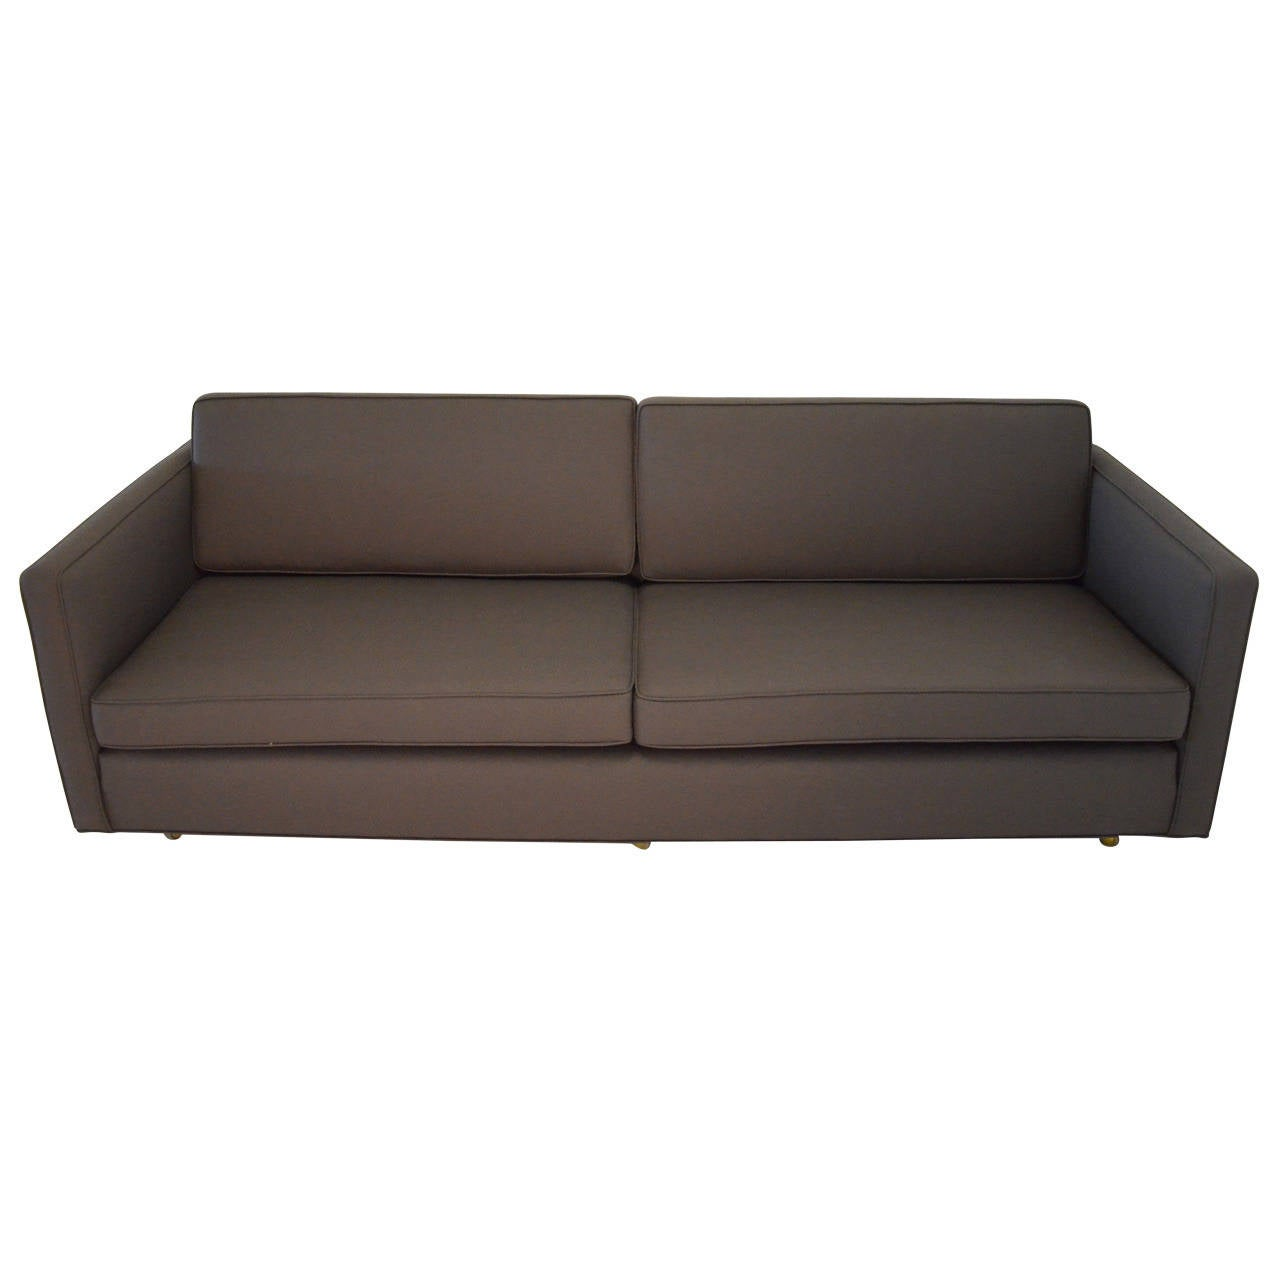 holly hunt sofa cost u love pasadena hours harvey probber newly upholstered in fabric